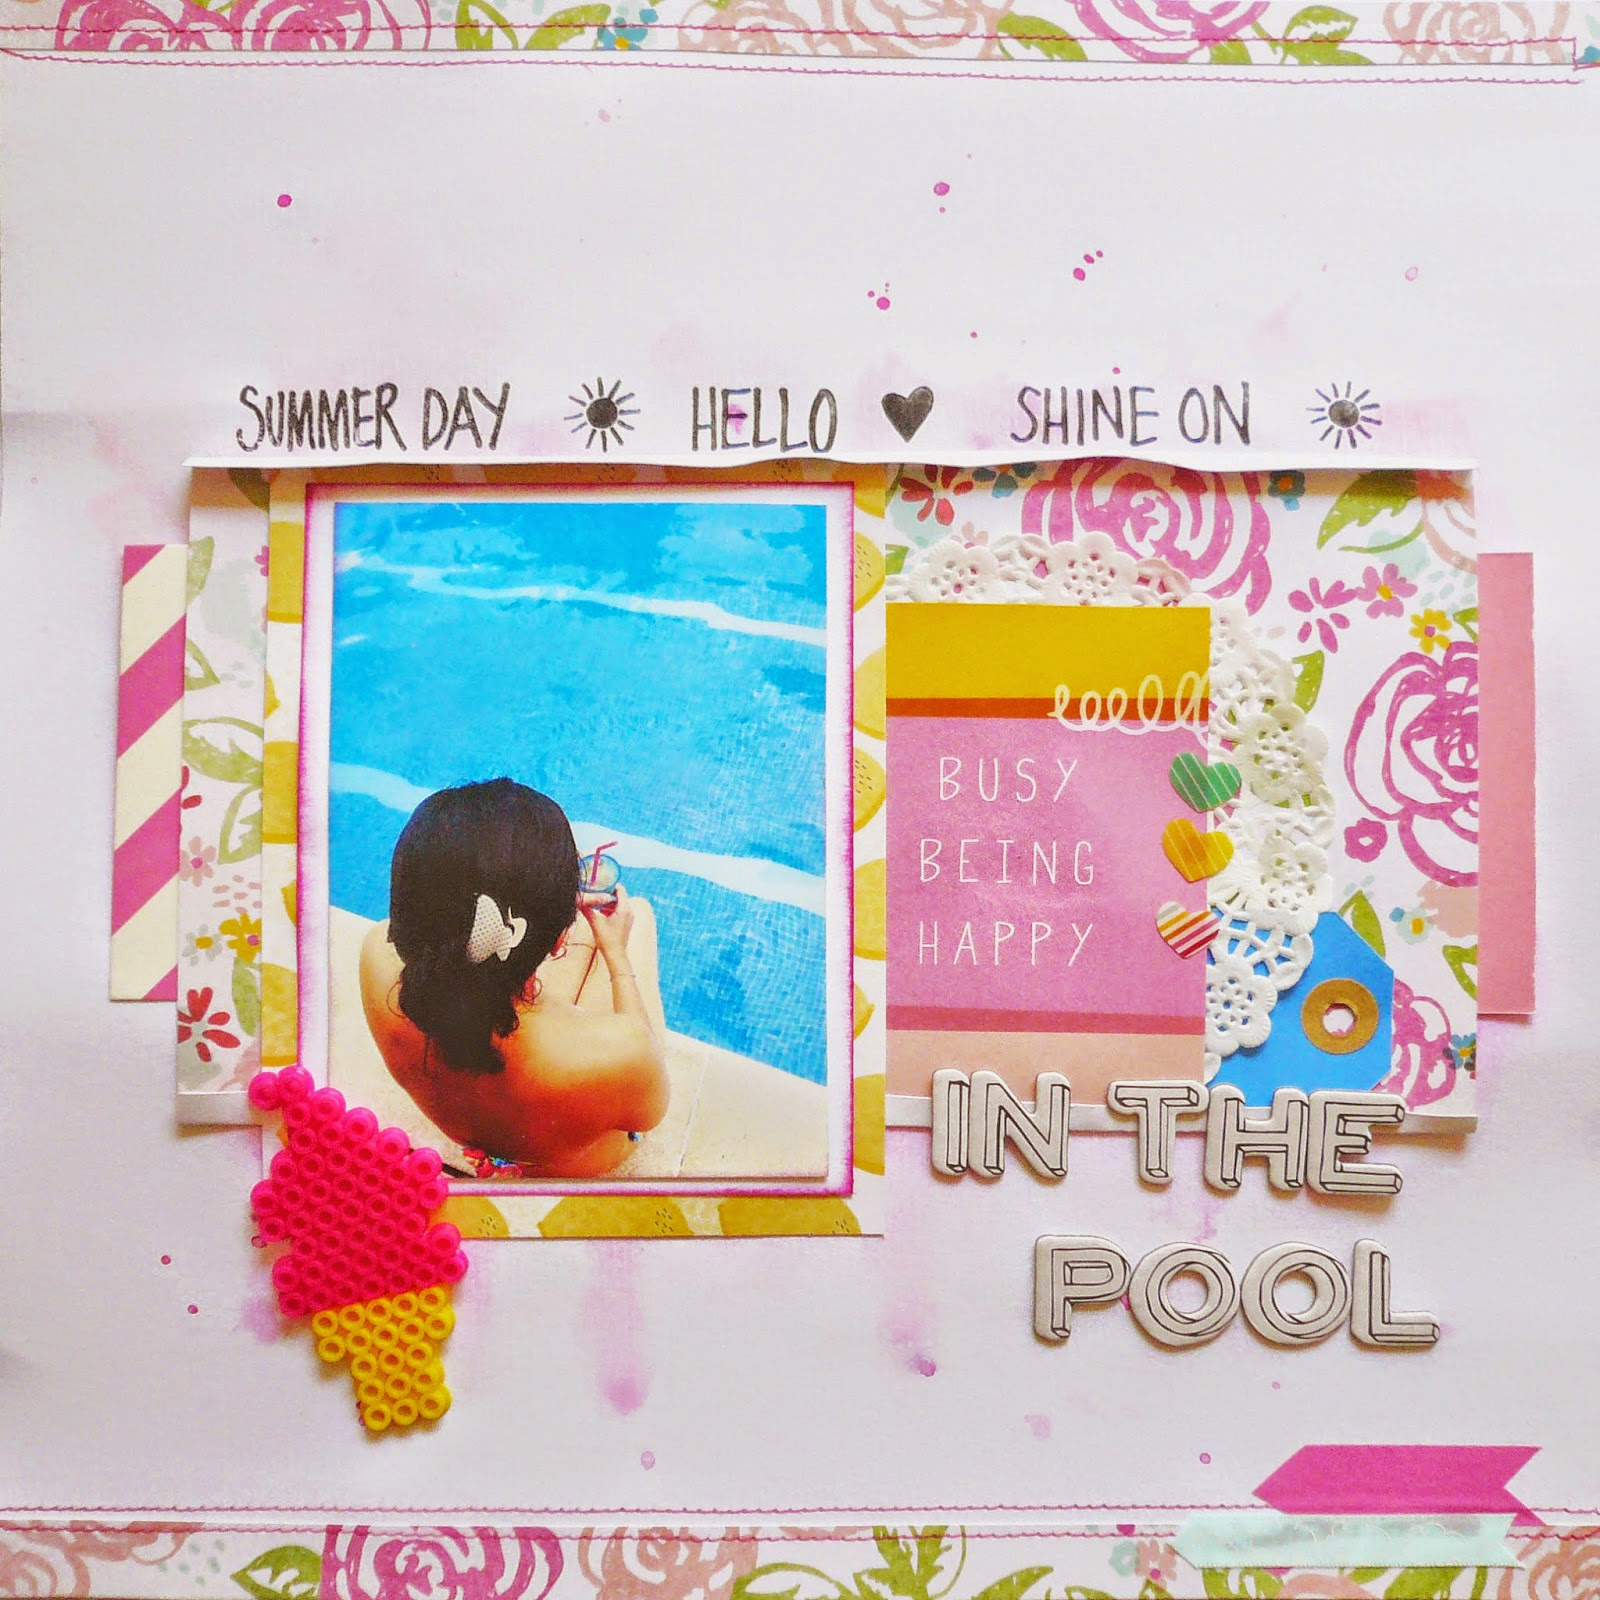 http://bypeonia.blogspot.com.es/2014/08/layout-busy-being-happy-in-pool.html